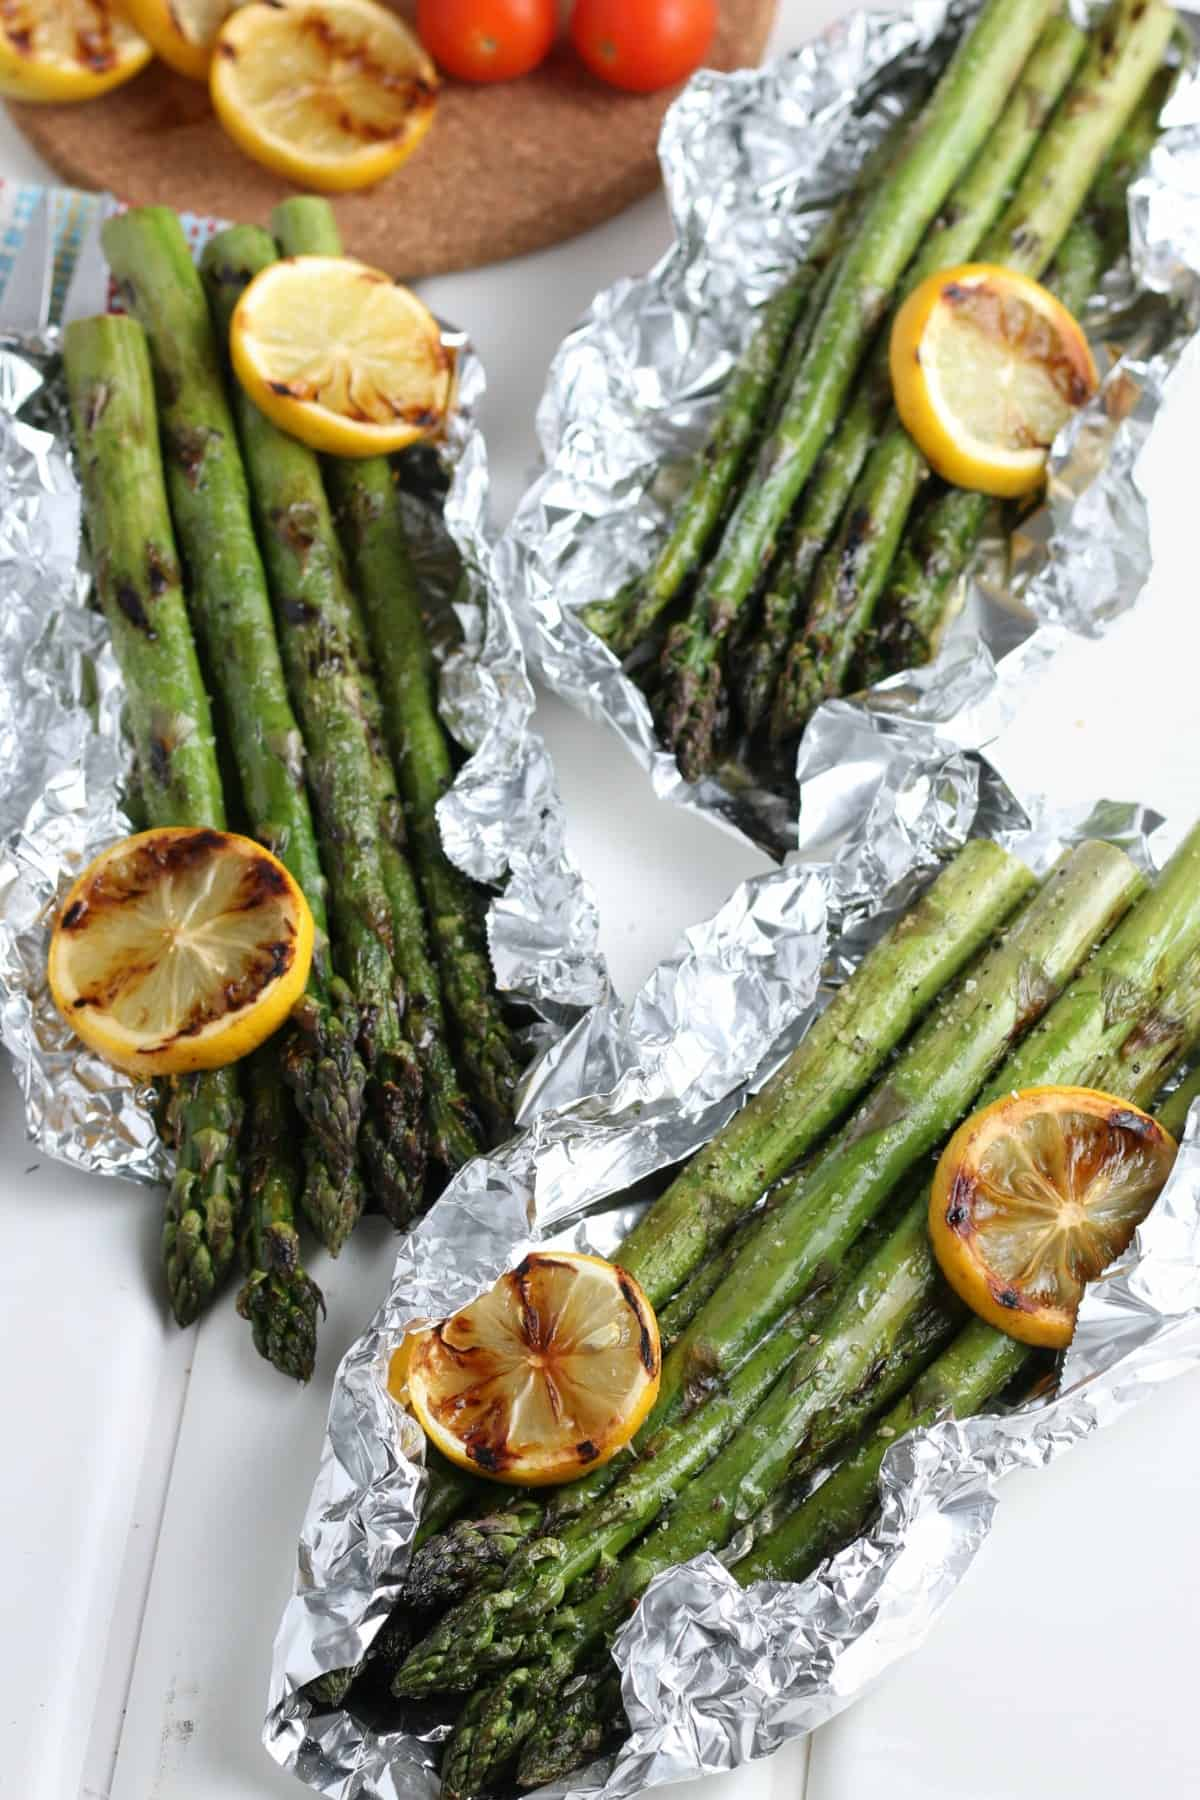 Overhead view of asparagus bundles in thier own foil packet with grilled lemon slices laying here and there.